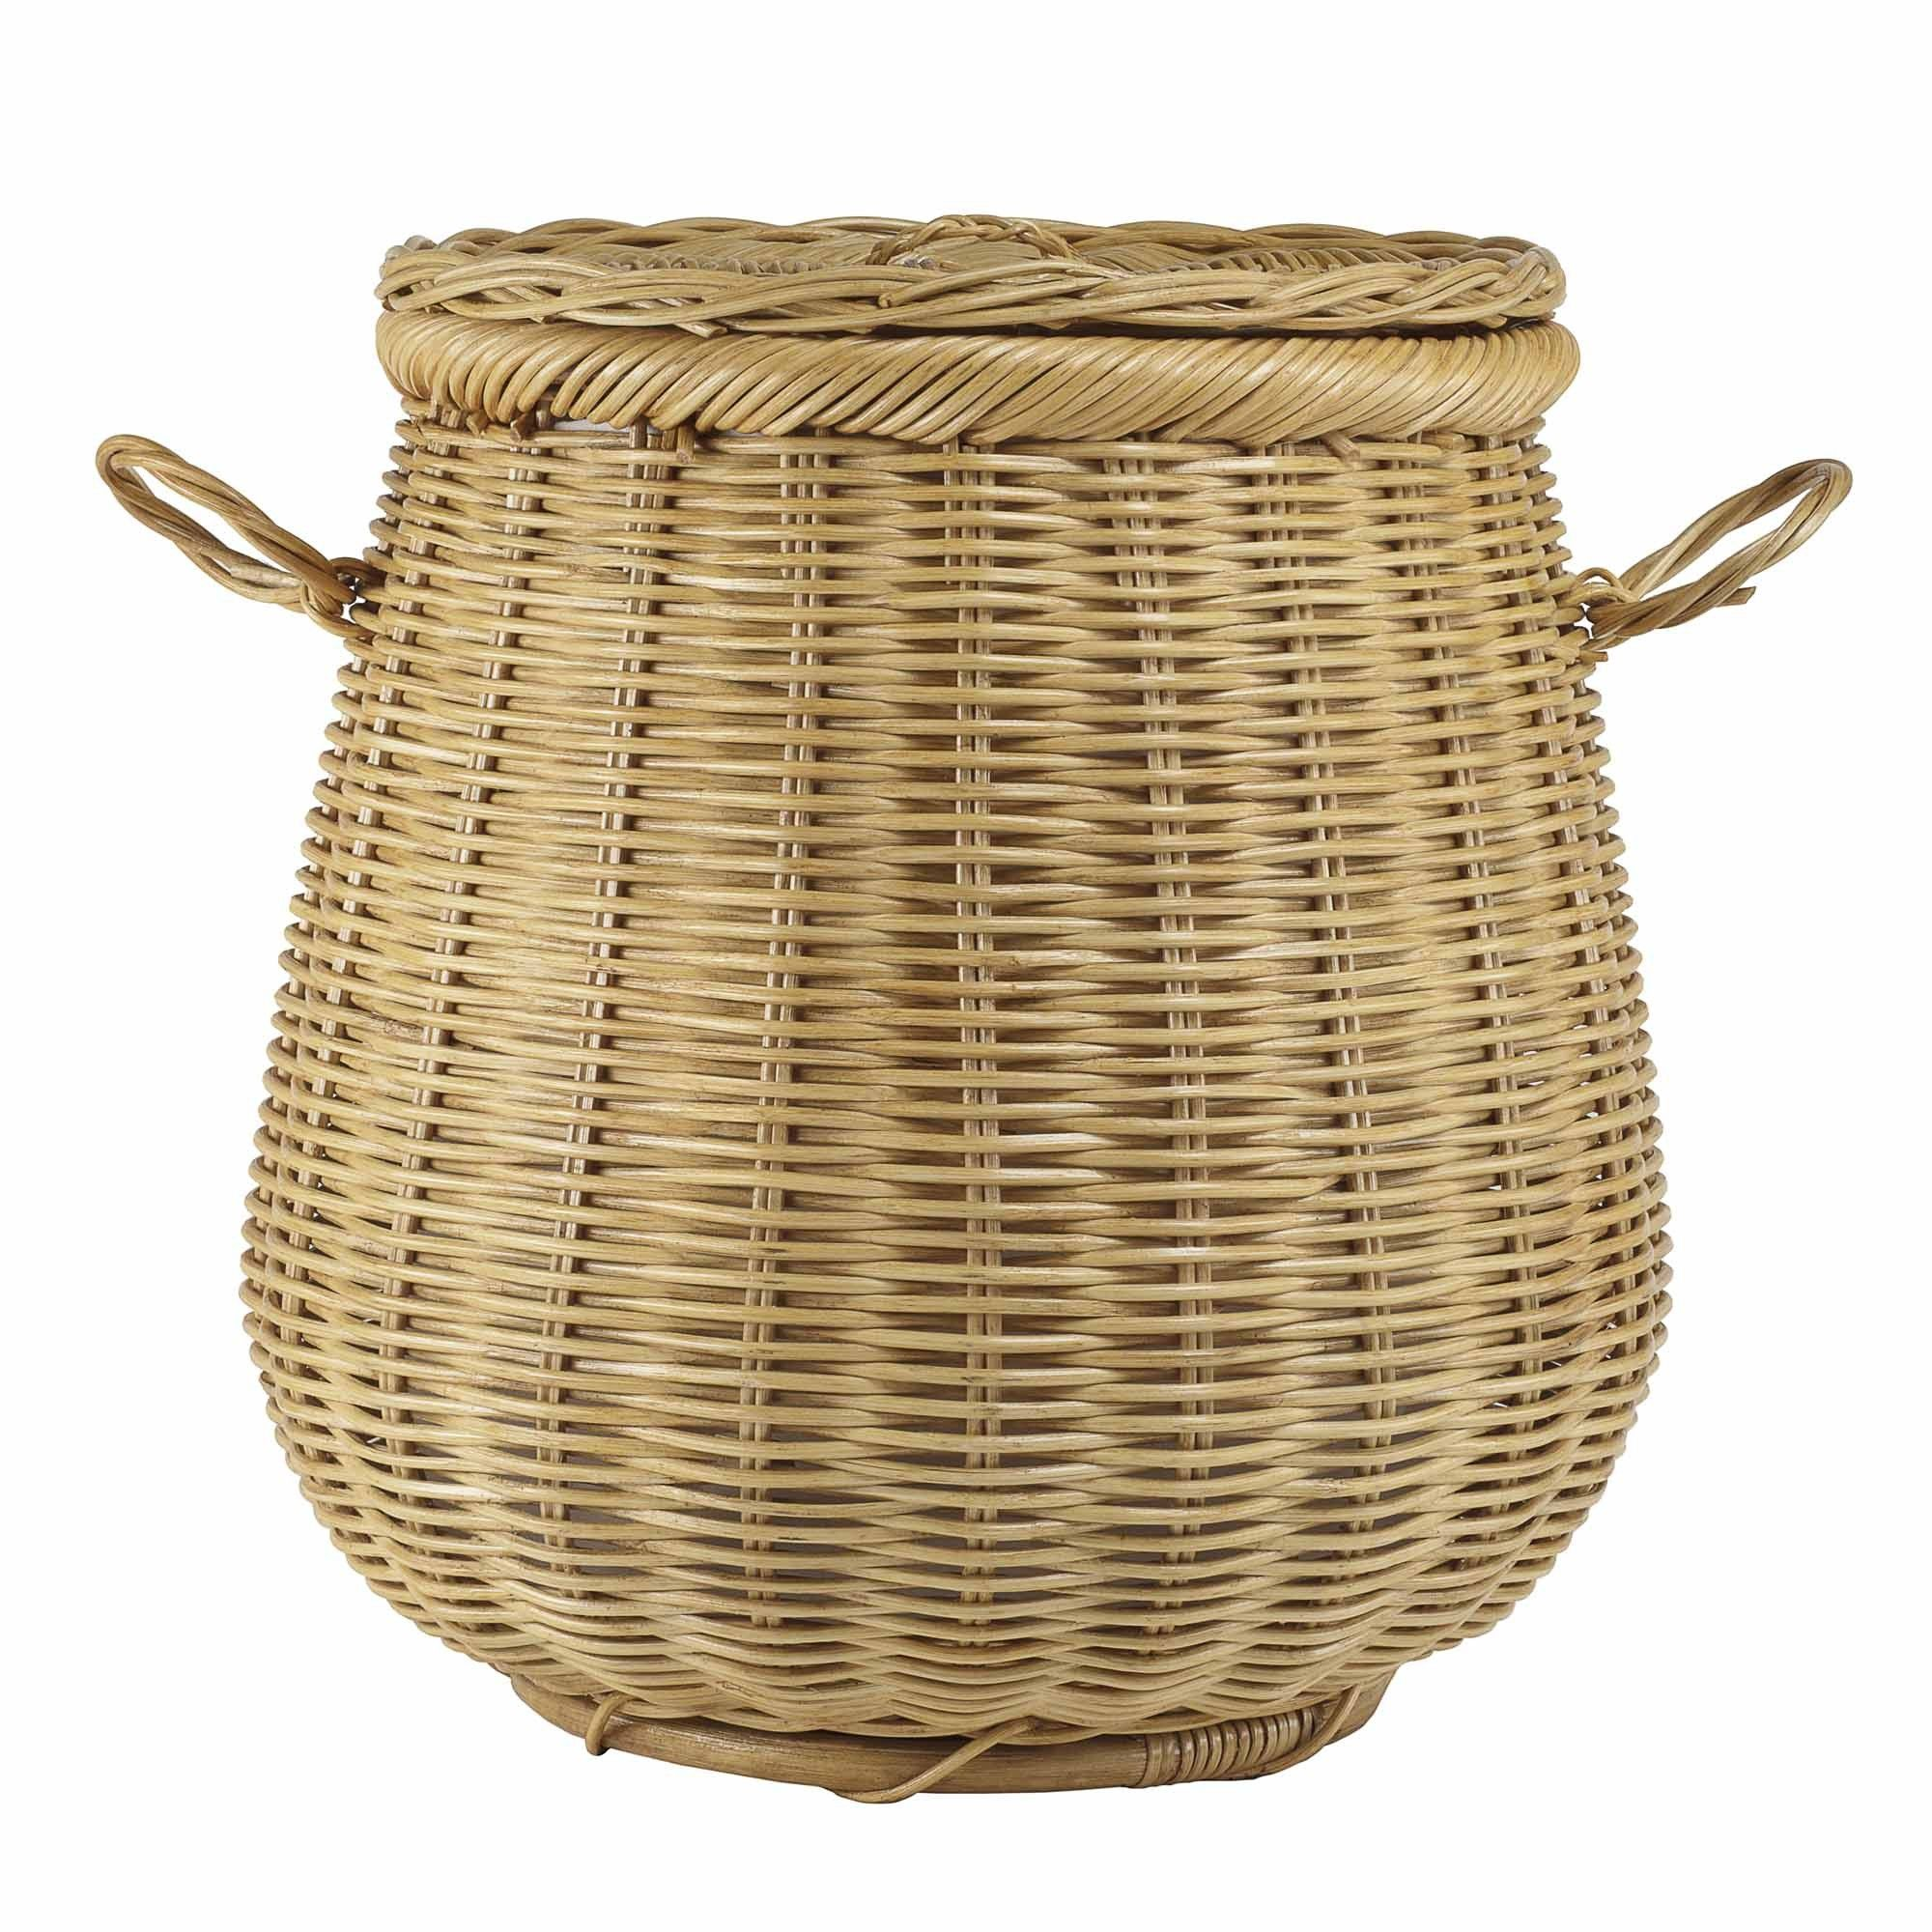 Wicker Laundry Baskets Wonderful Wicker Laundry Basket With Lid Png Pinterest